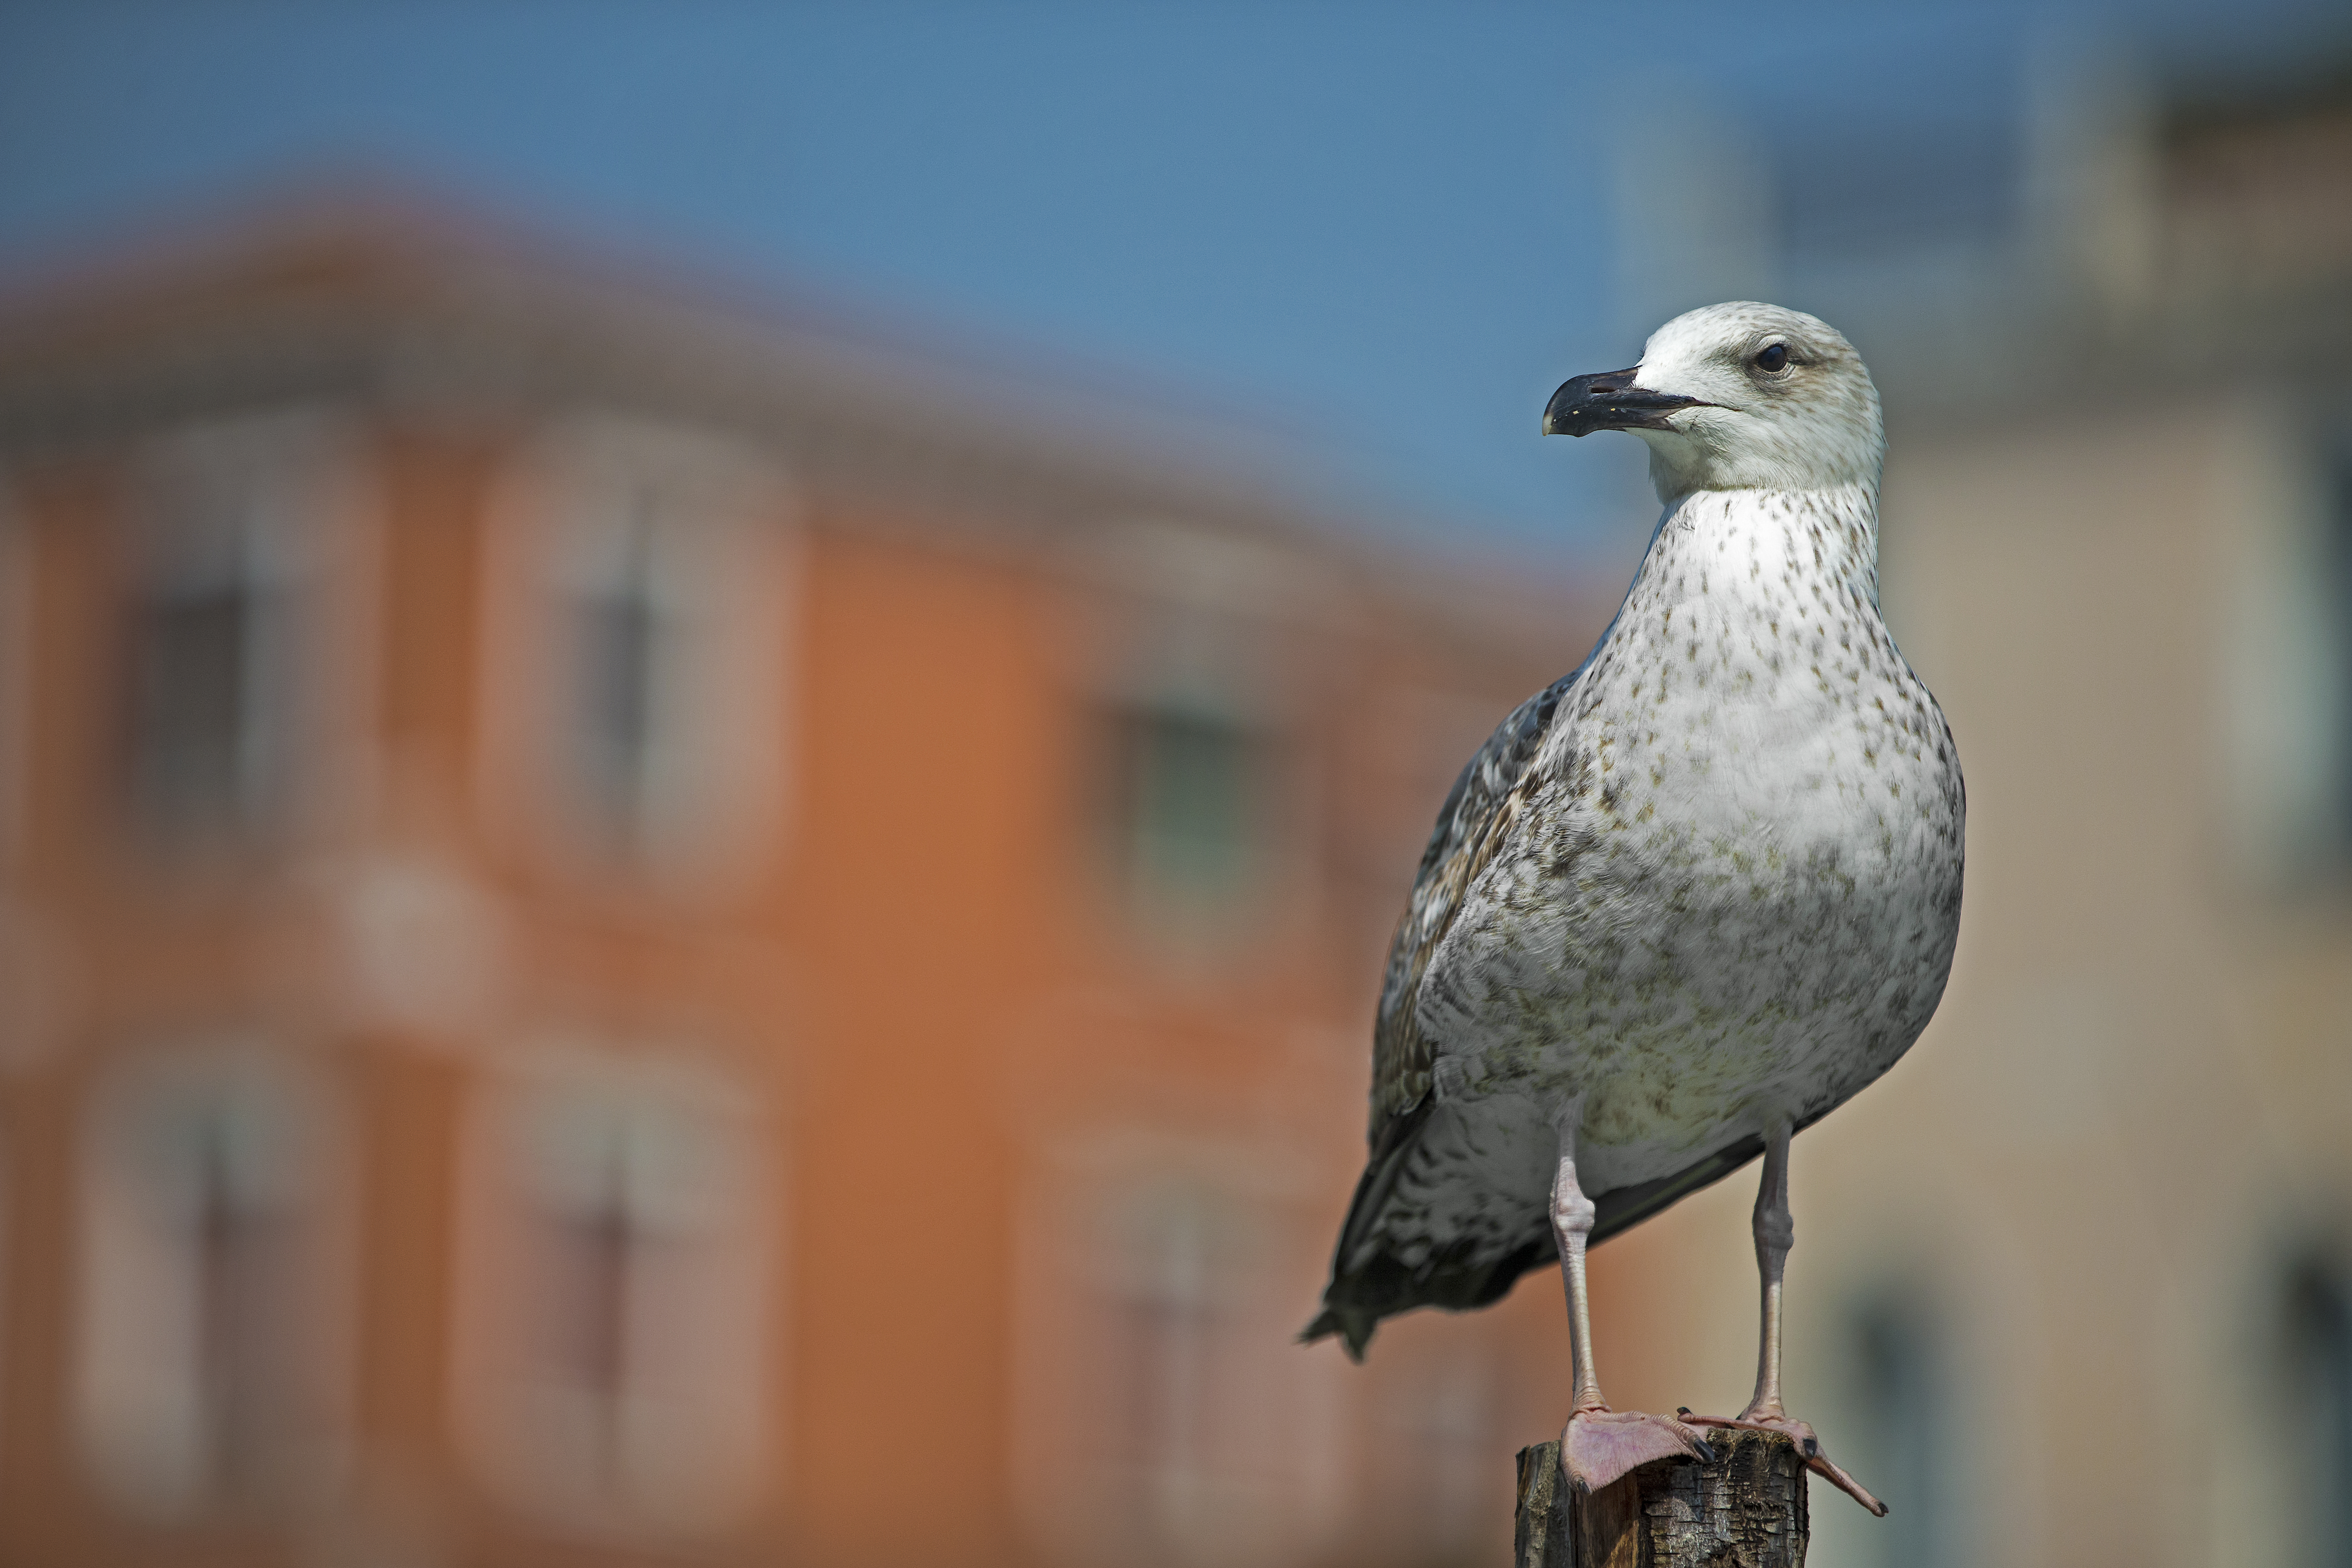 Seagull on a Pole in Venice